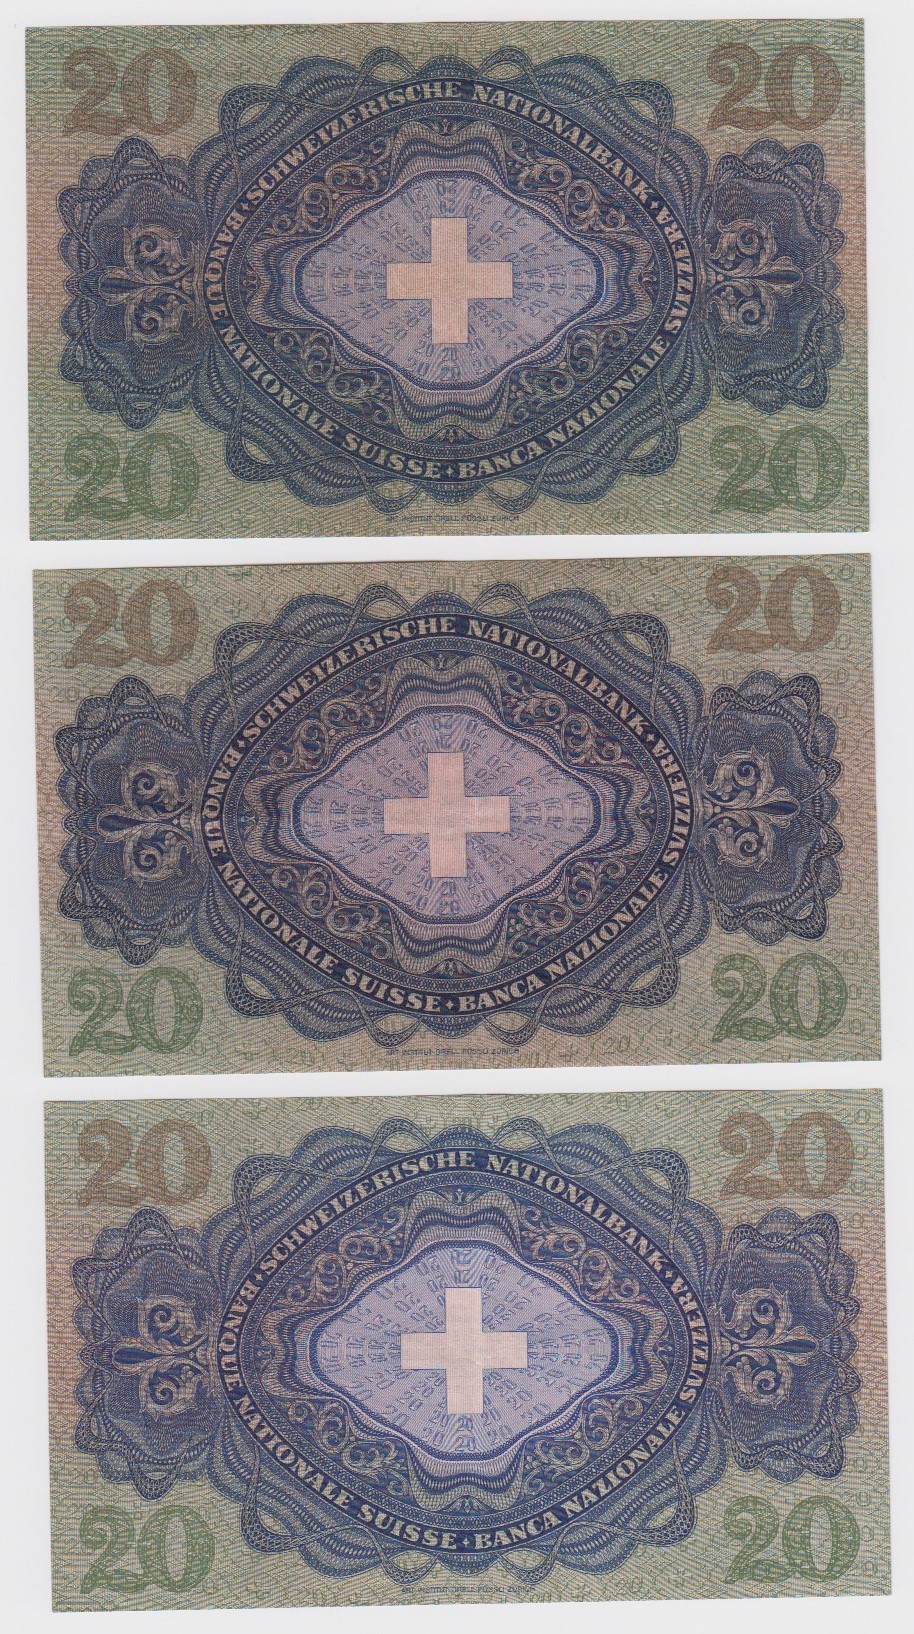 Switzerland 20 Franken (3), dated 28th March 1952 serial 30Q 048611, 20th January 1949 serial 25H - Image 2 of 2